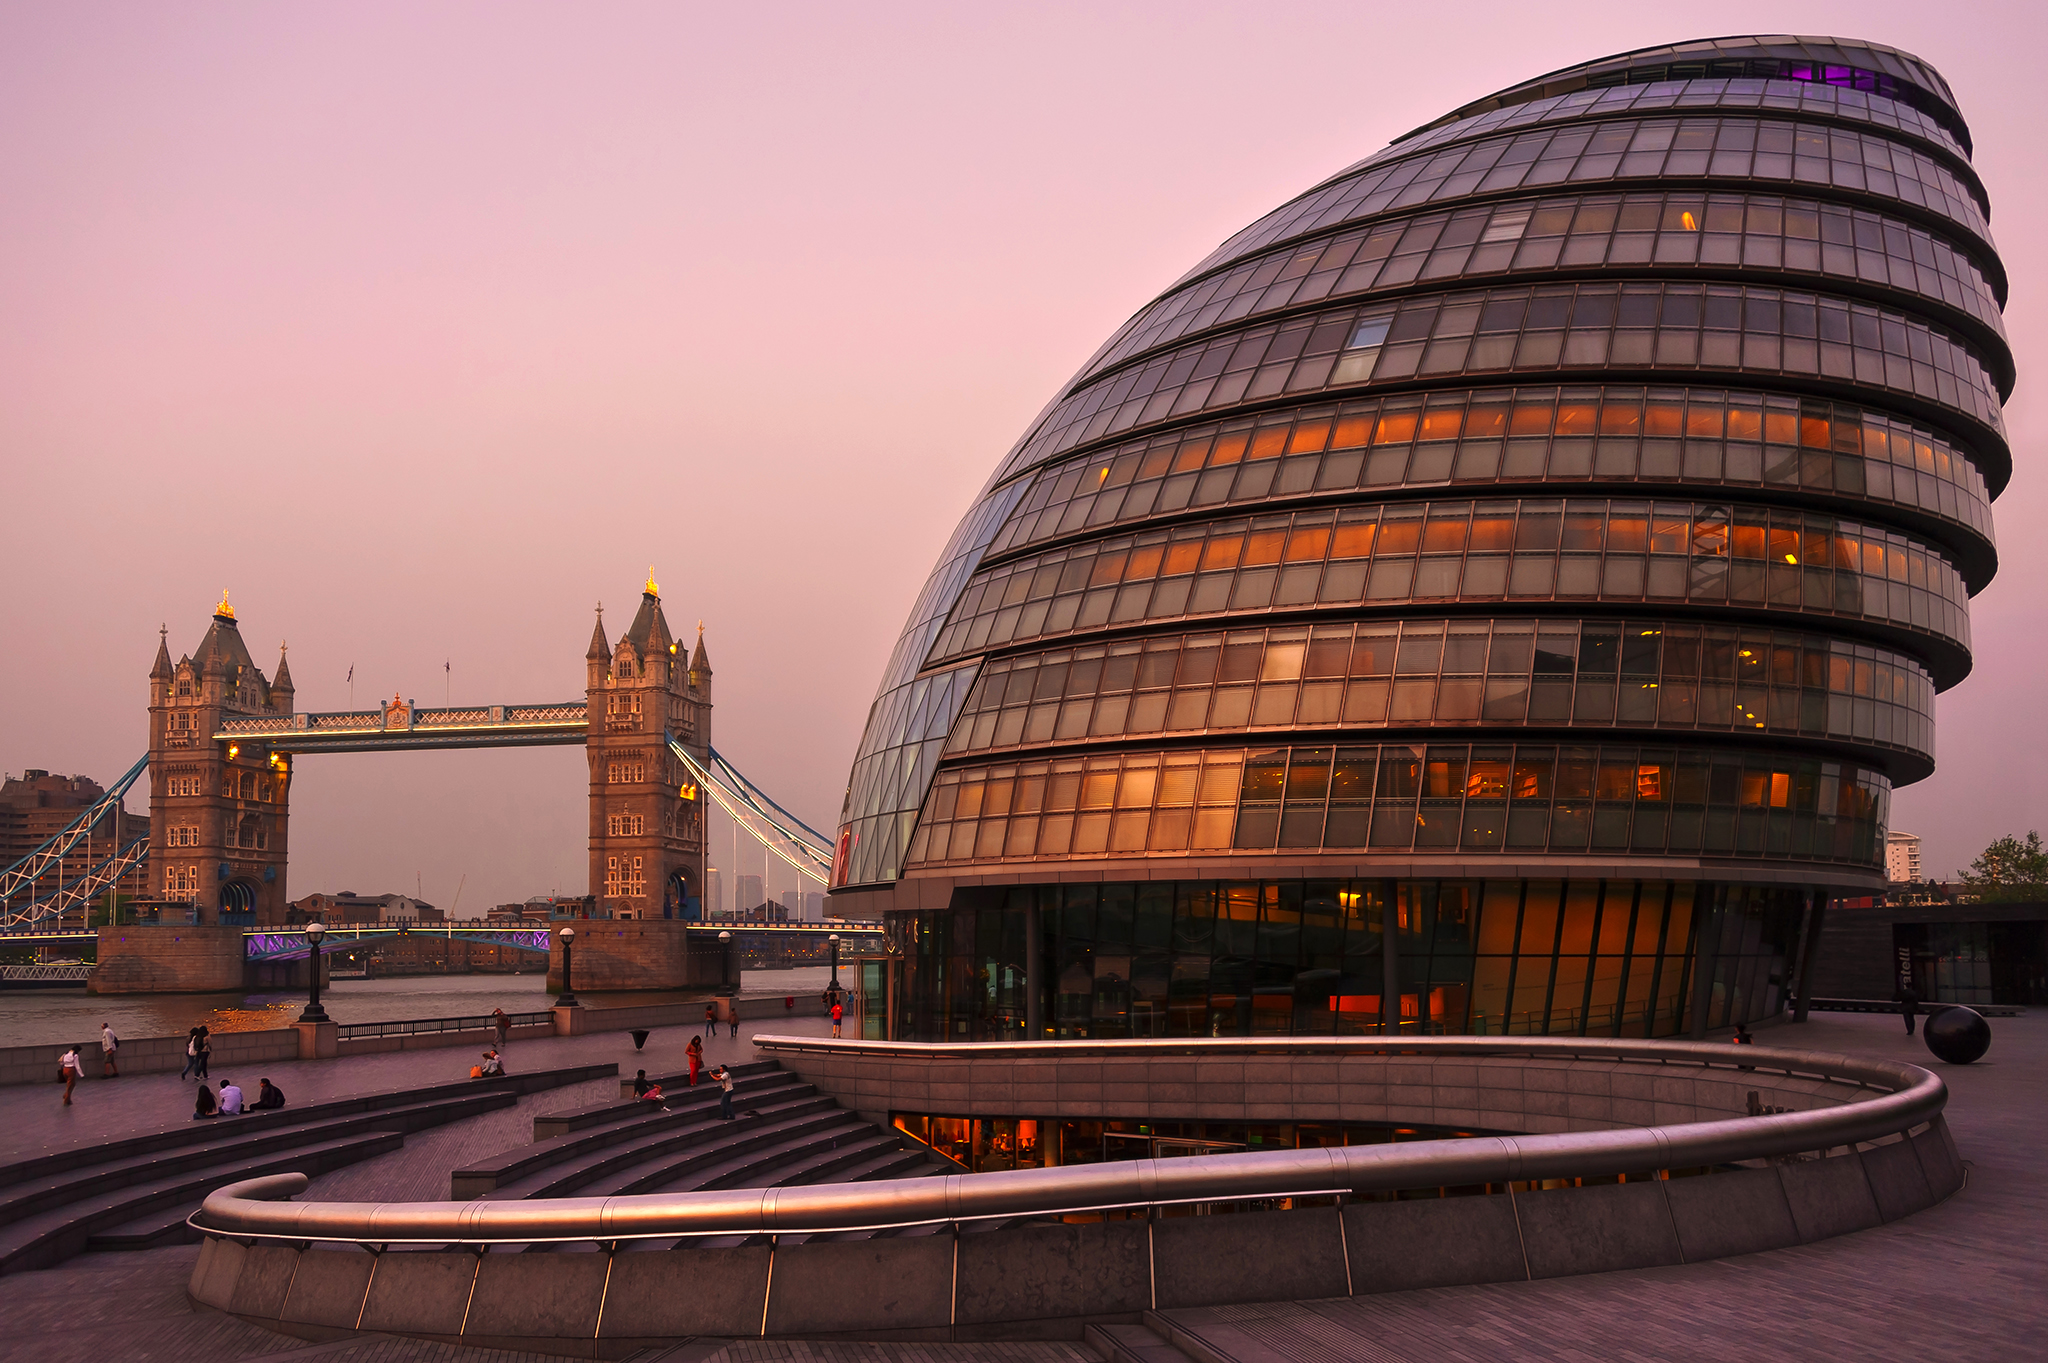 City Hall, United Kingdom